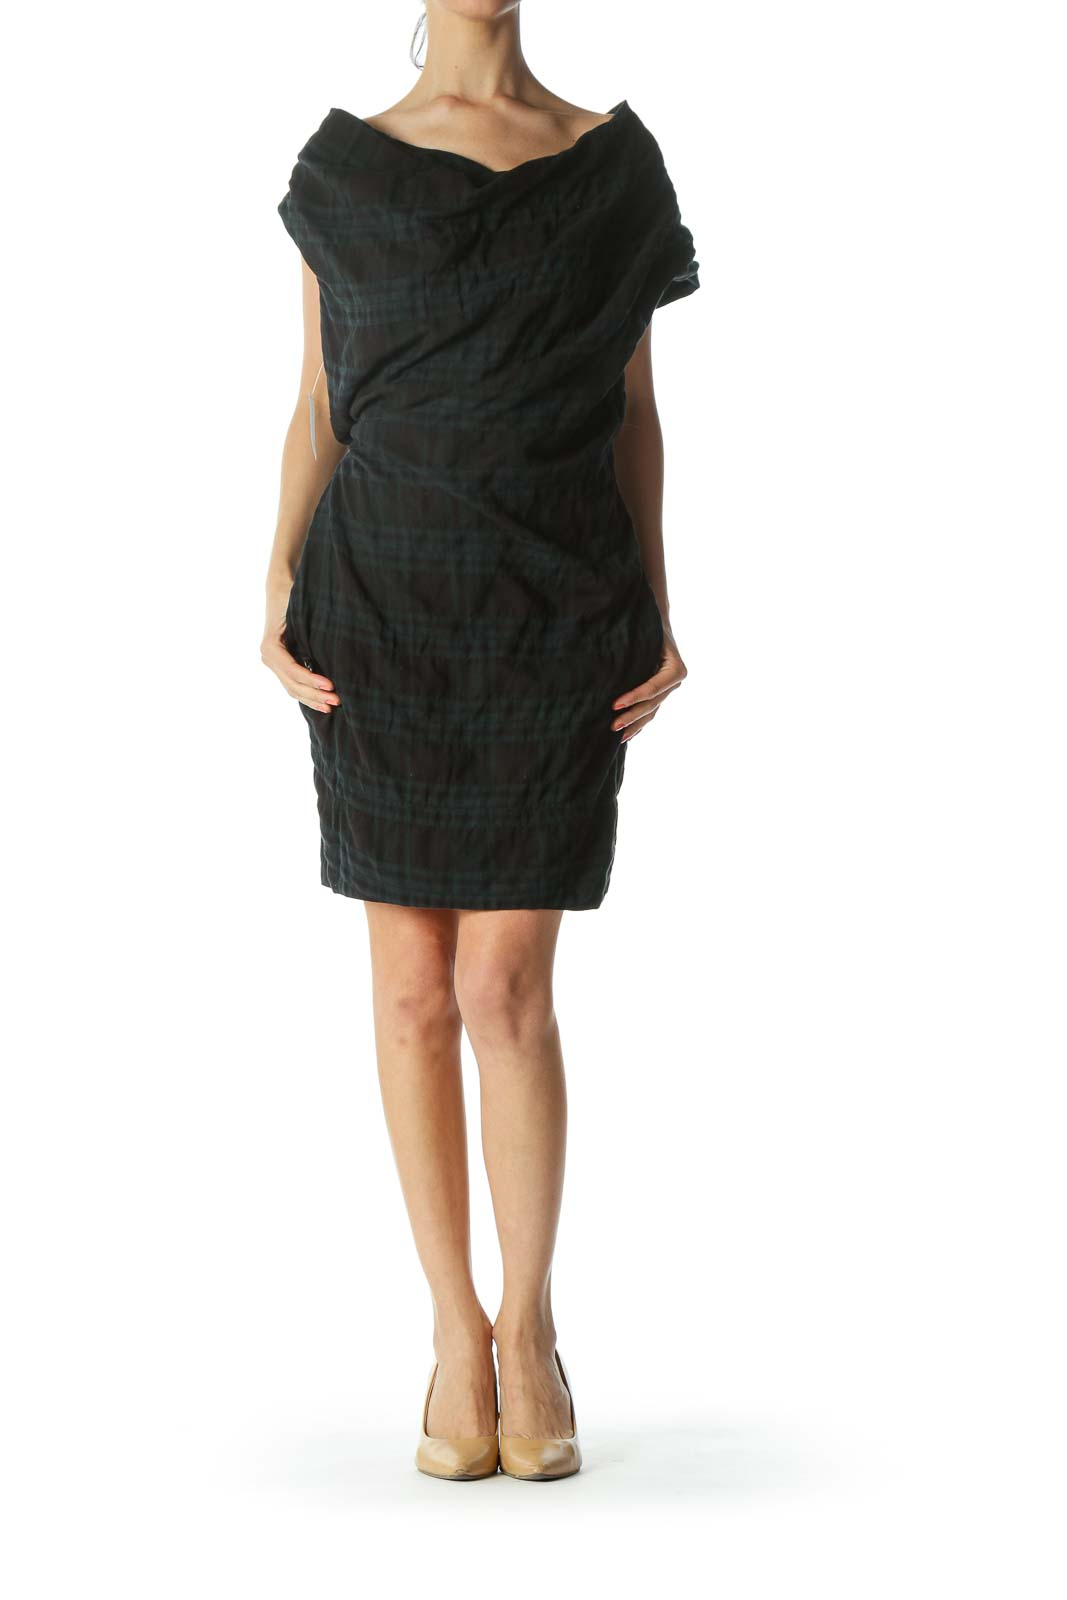 Blue/Black Off-Shoulder Plaid Pocketed Work Dress